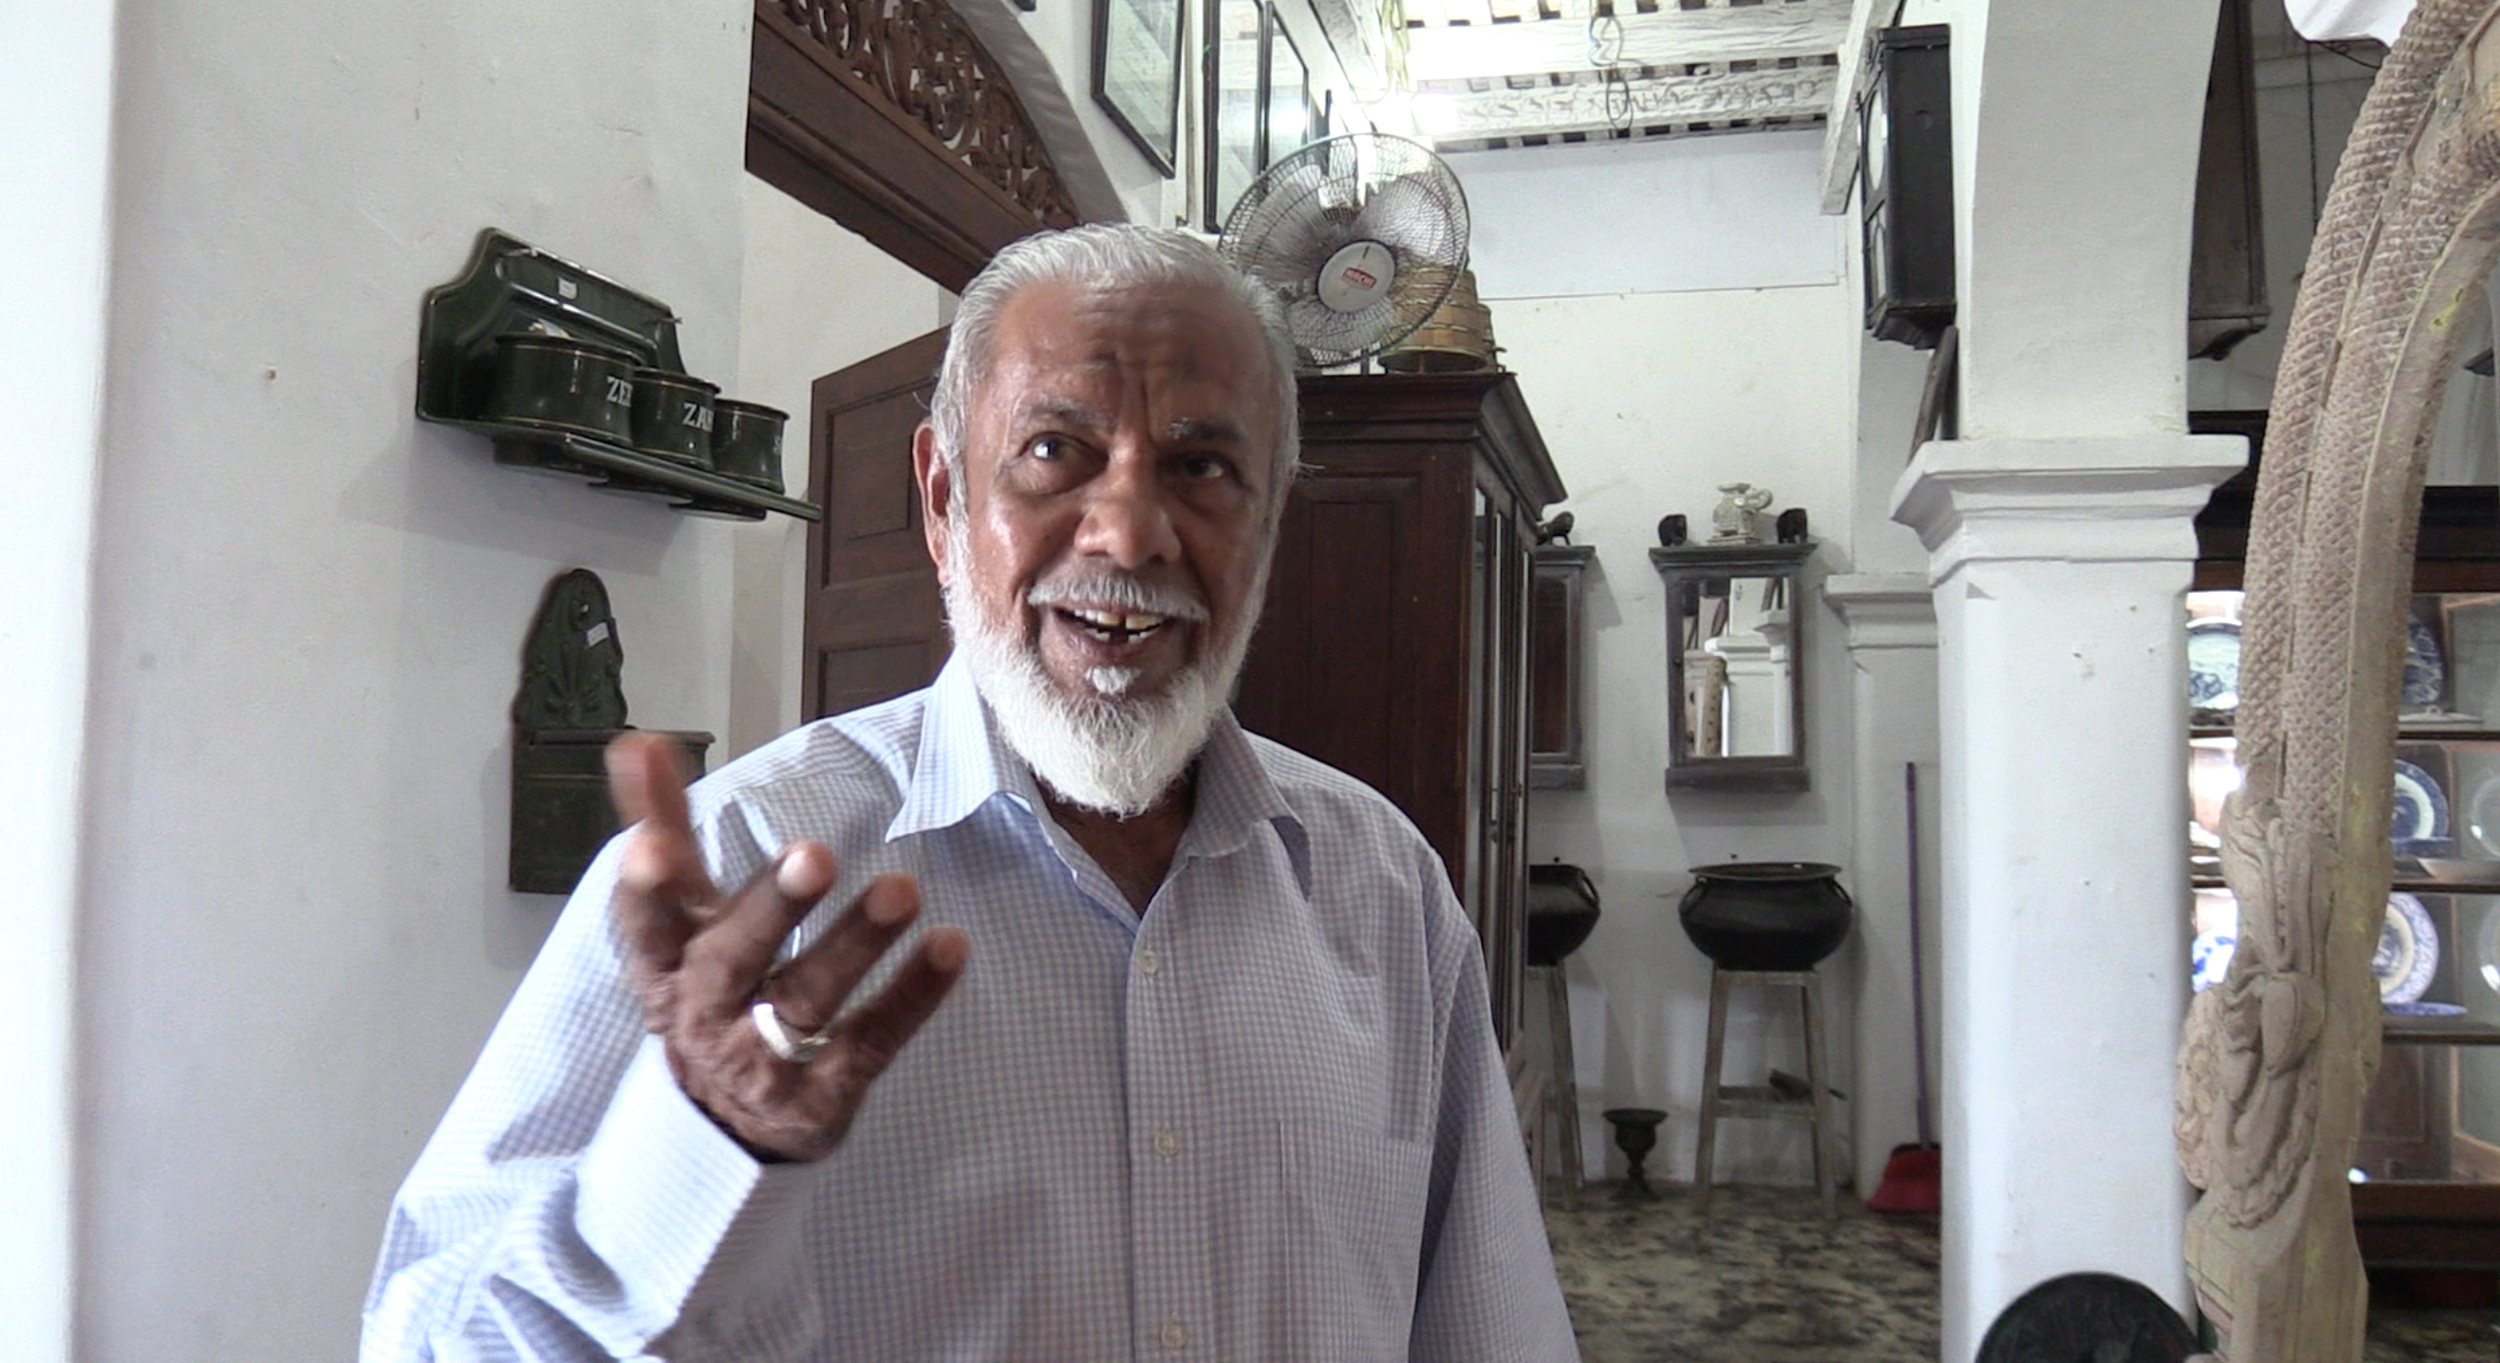 Shopkeeper and historian, Galle has an interesting past